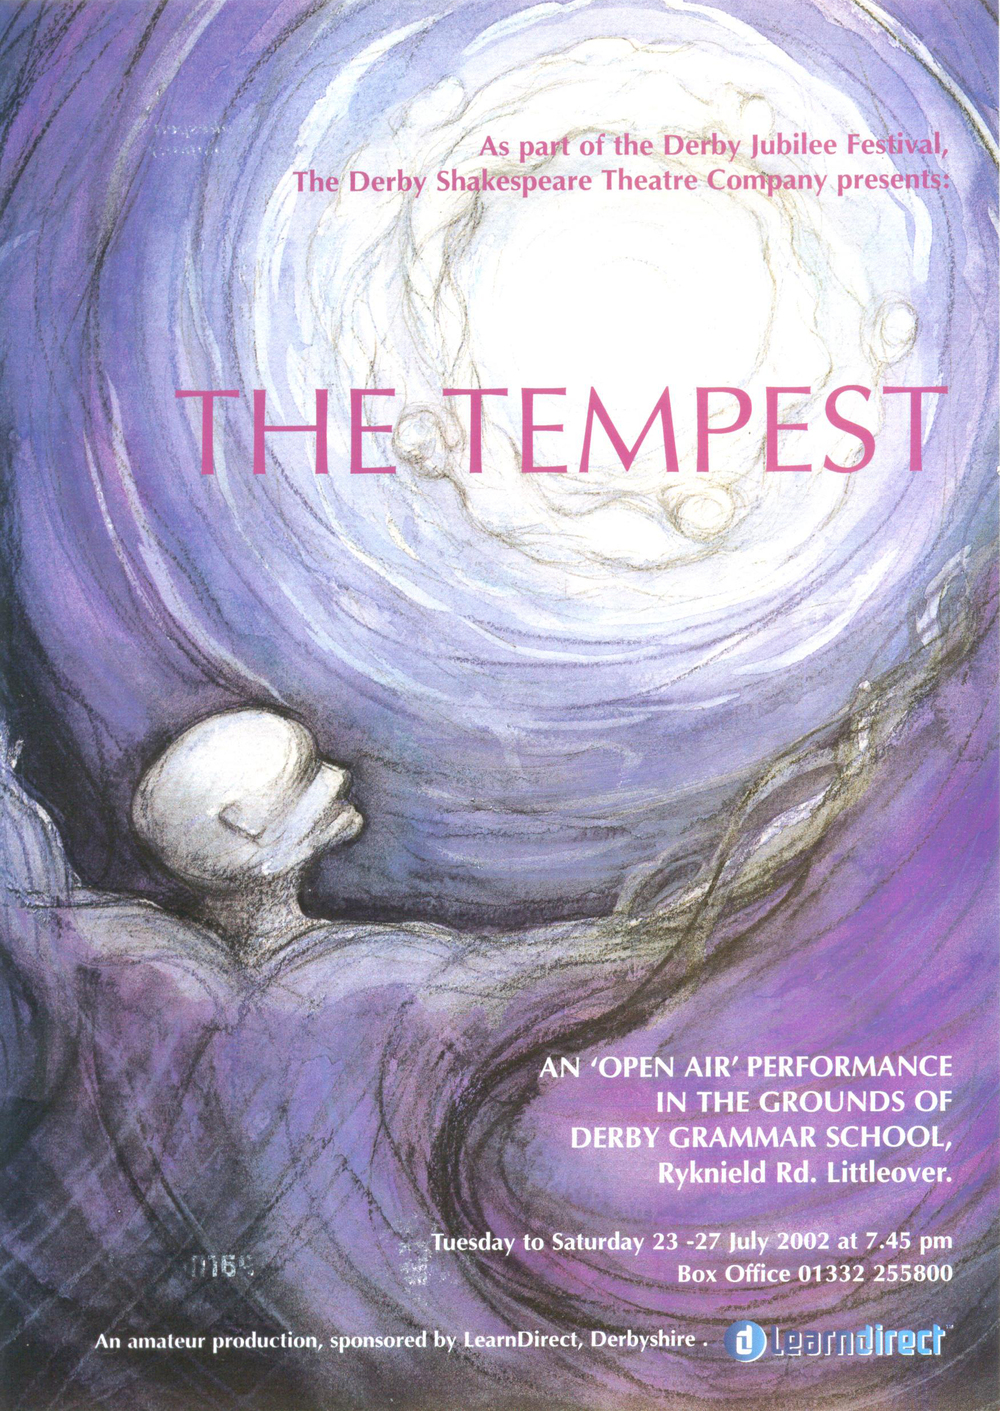 'The Tempest' 2002